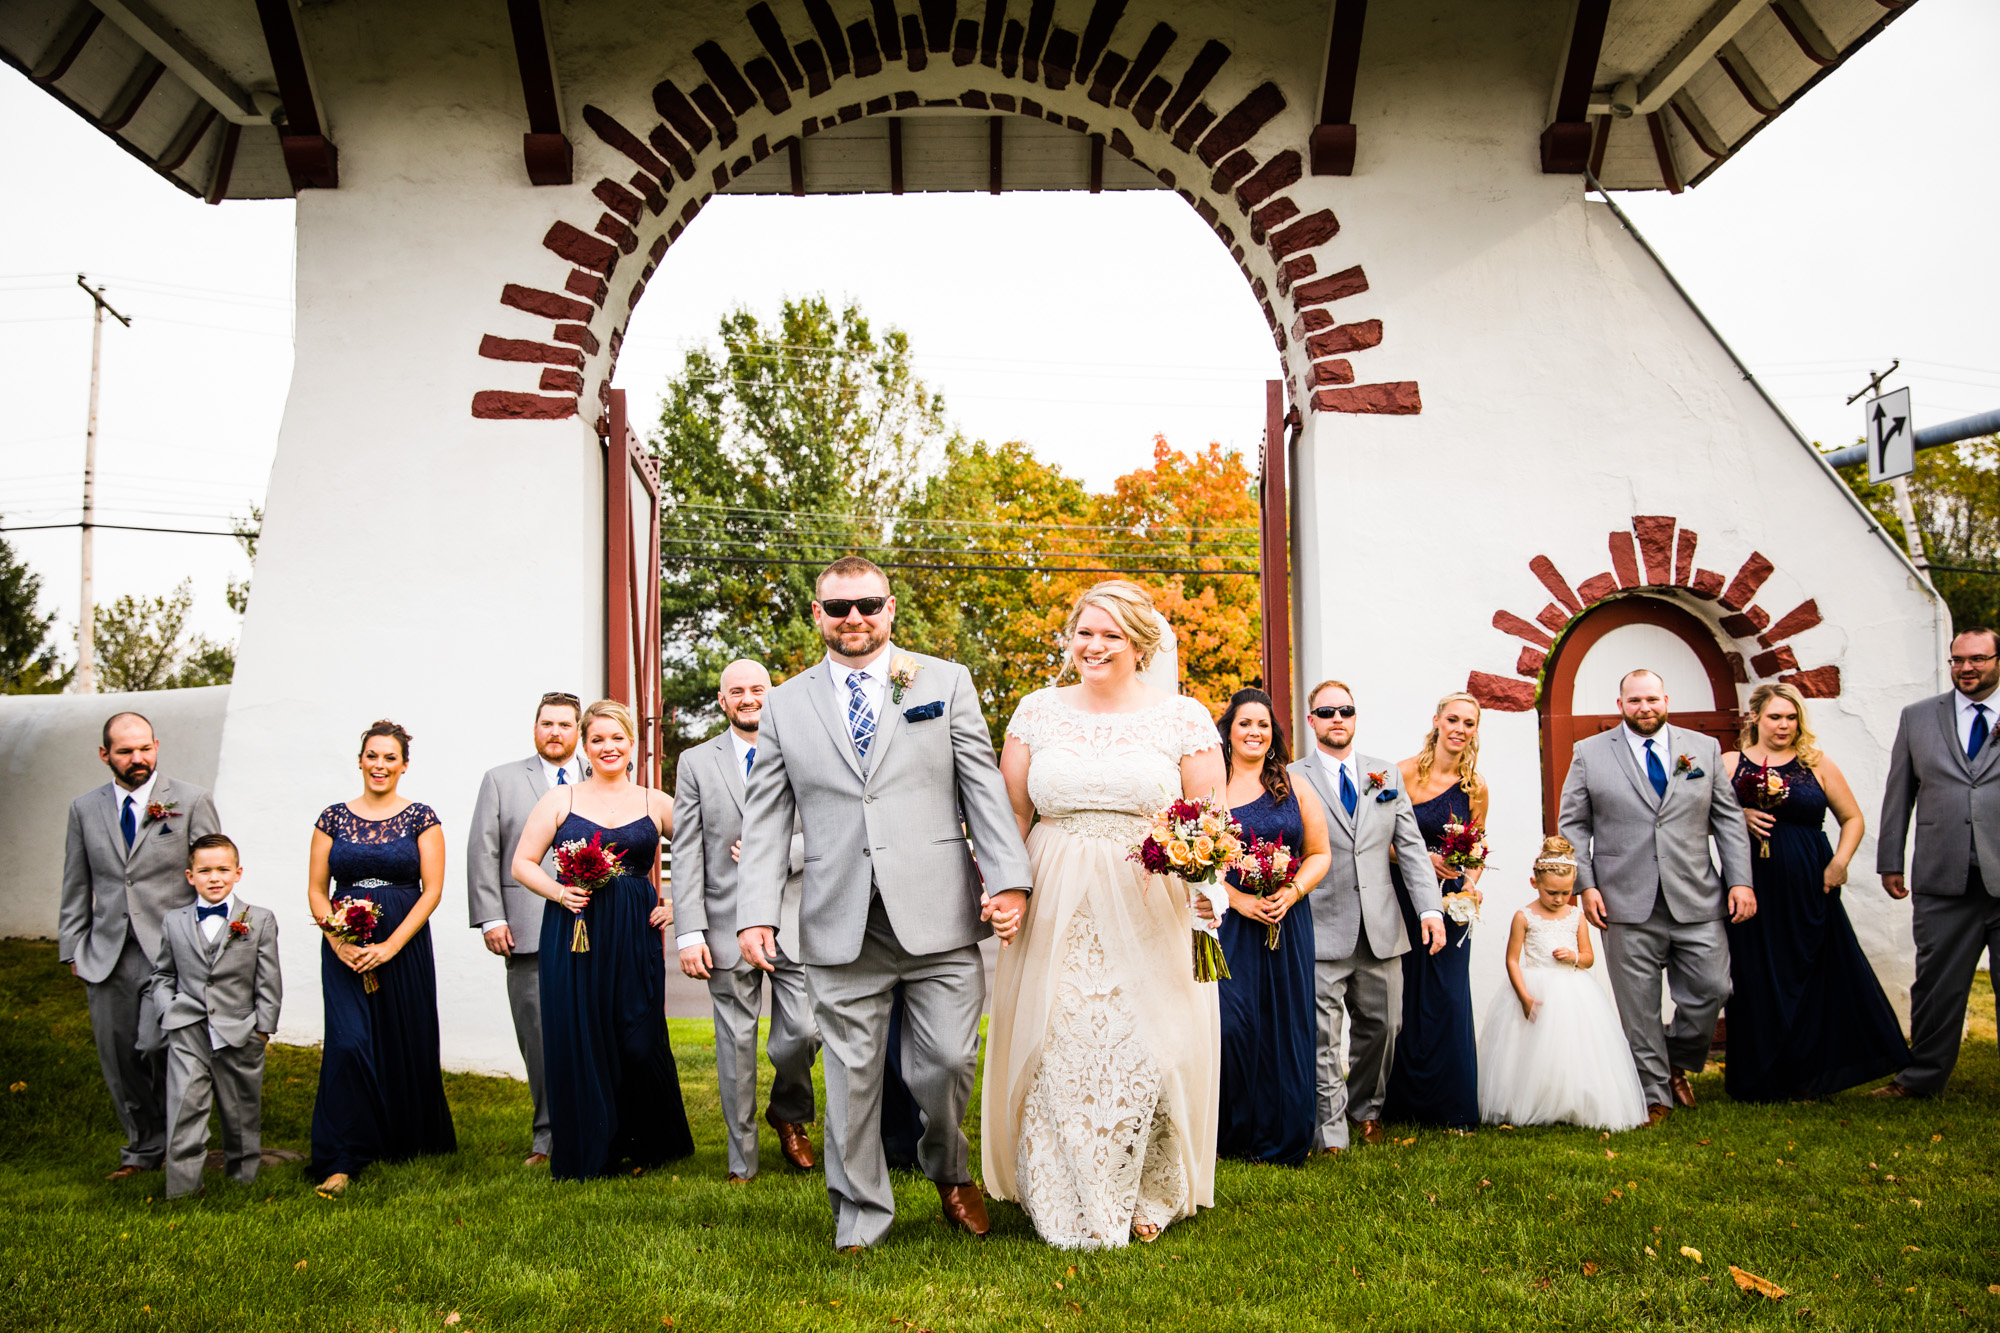 LOVESTRUCK PICTURES NORMANDY FARMS WEDDING - 044.jpg